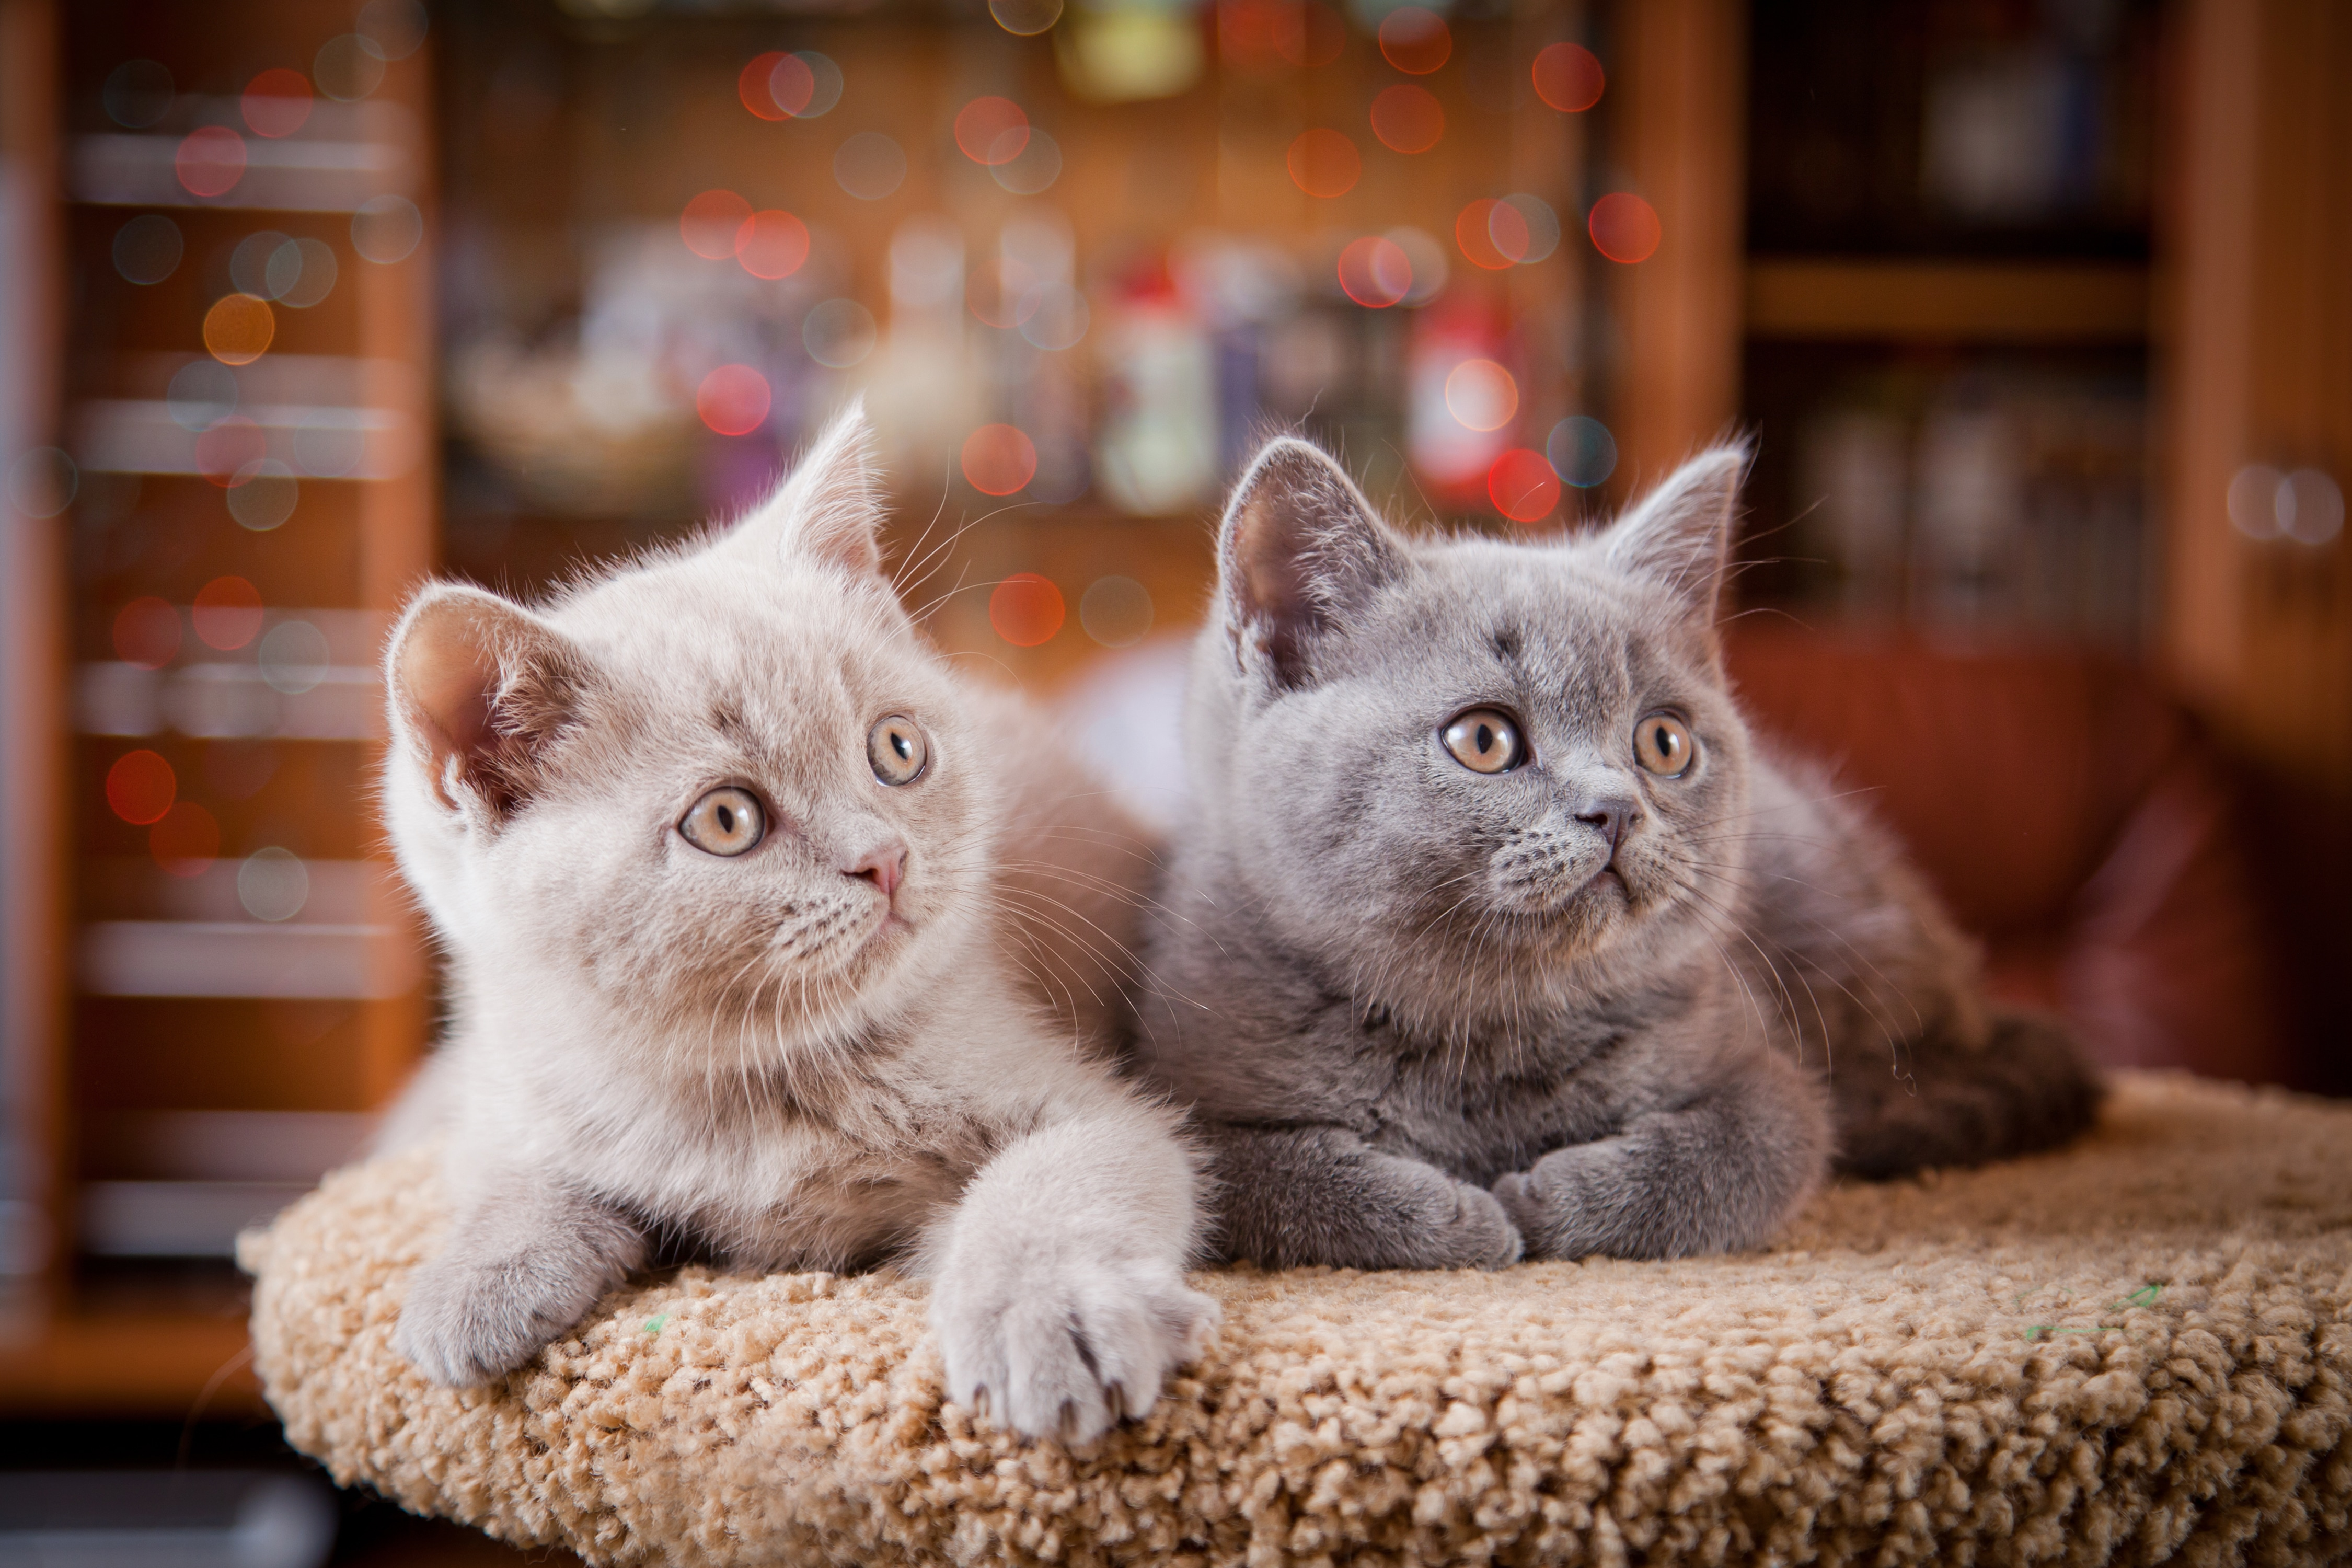 kittens-targeting-your-petbusiness-customers